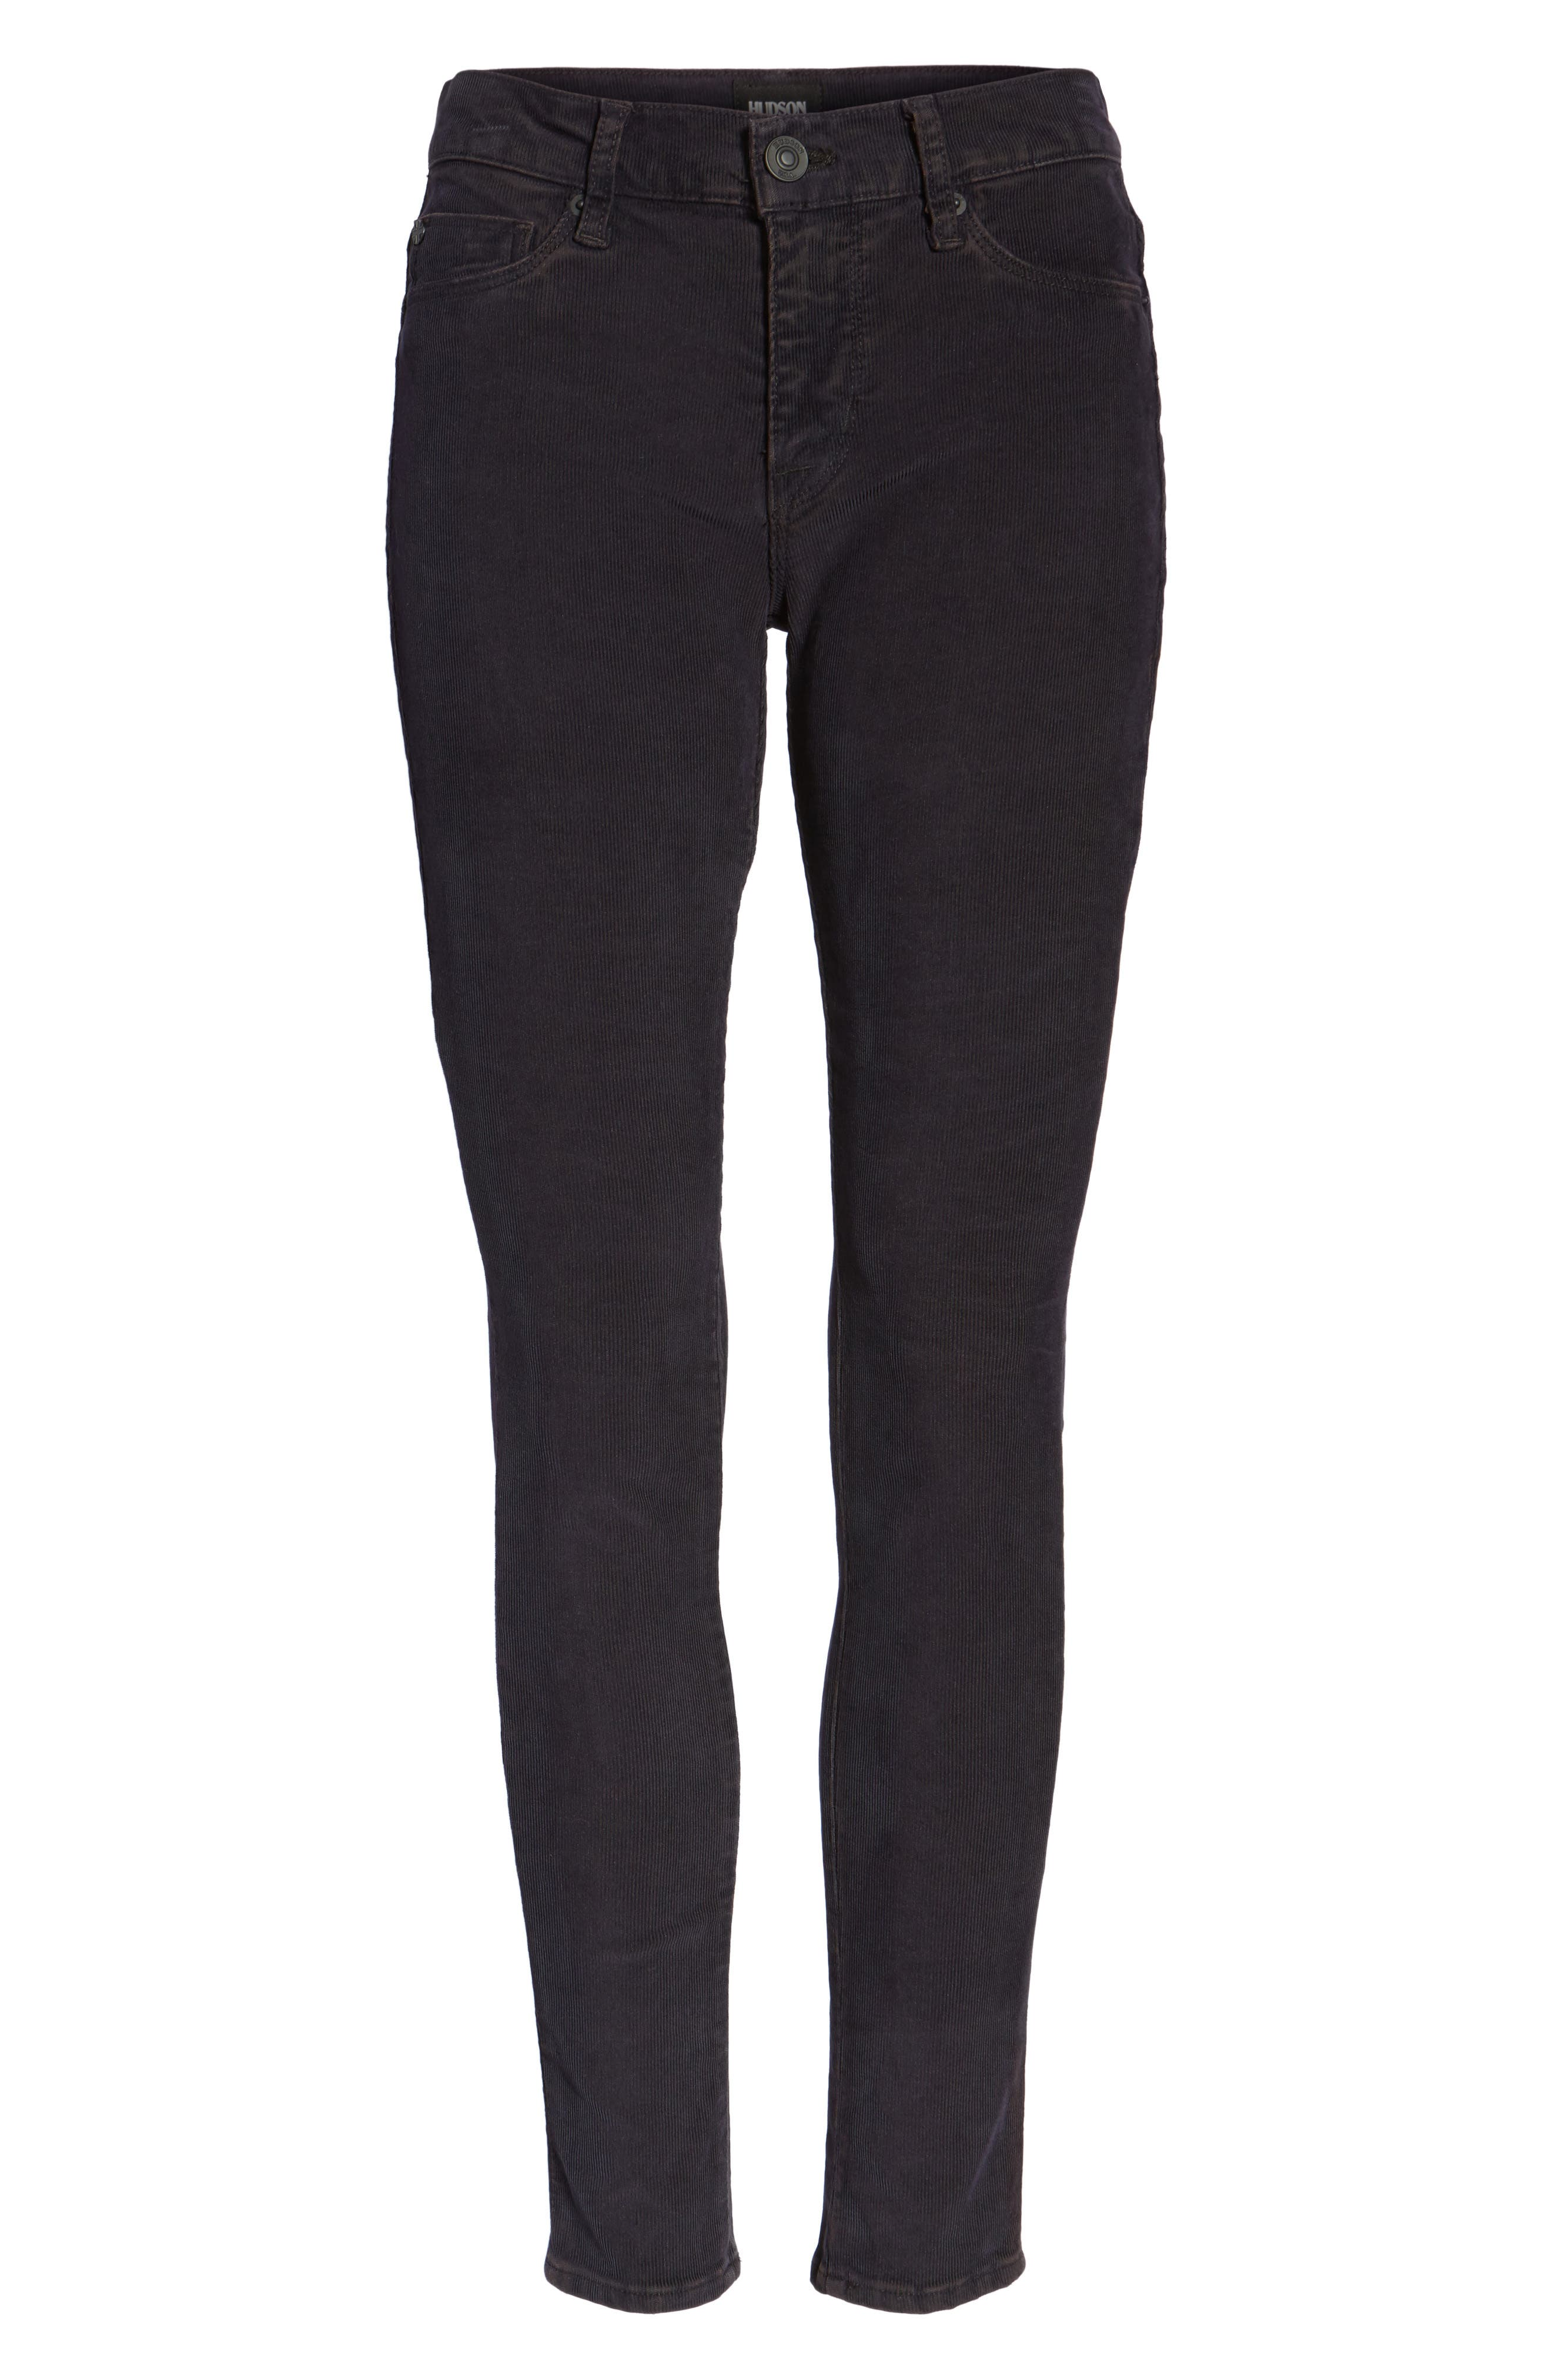 Nico Ankle Super Skinny Corduroy Pants,                             Alternate thumbnail 6, color,                             Broken Orchid